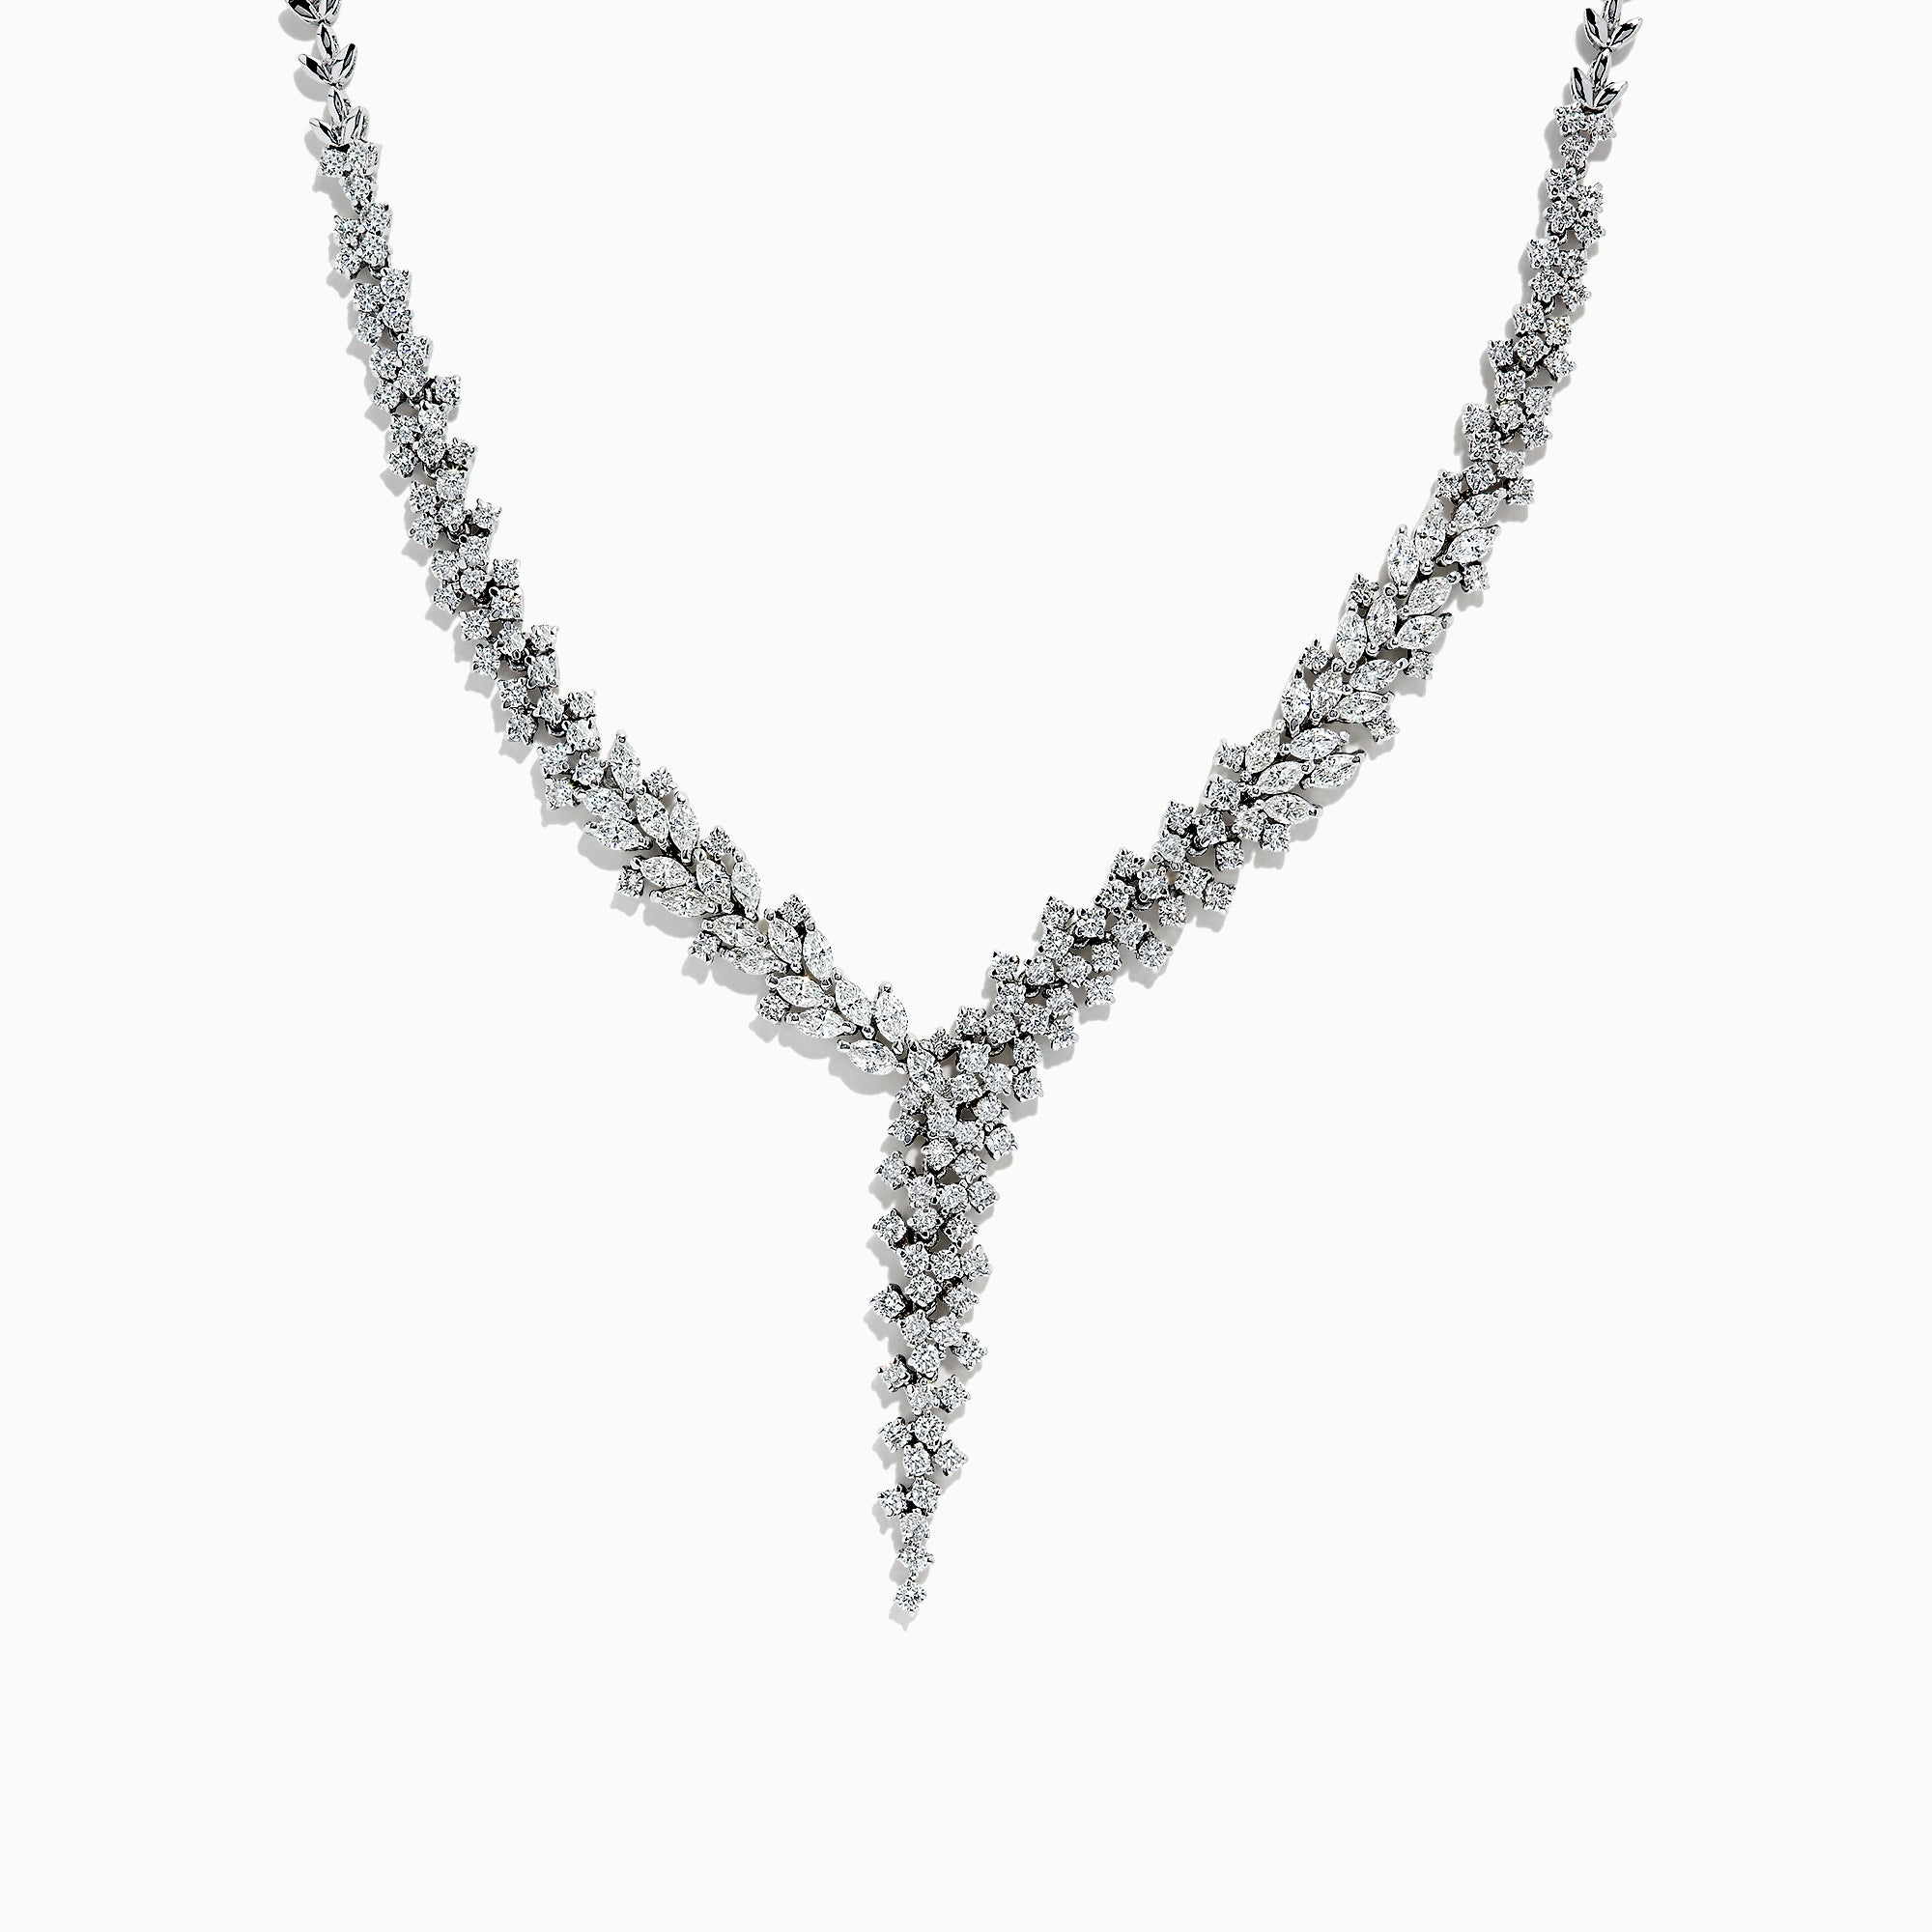 Effy Pave Classica 14K White Gold Diamond Necklace, 7.26 TCW